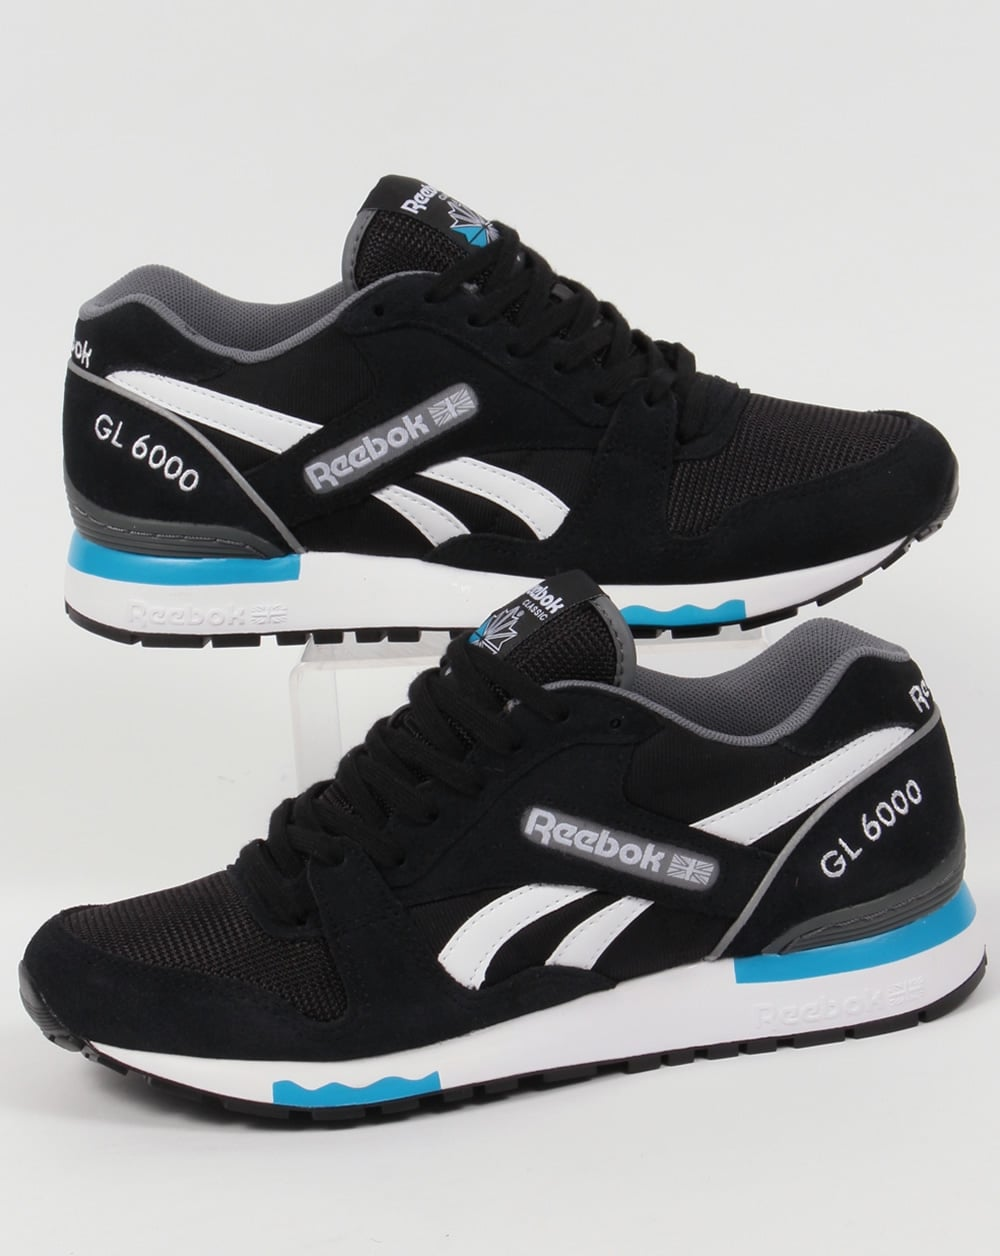 reebok gl 6000 pp trainers black alloy blue shoes runners mens. Black Bedroom Furniture Sets. Home Design Ideas